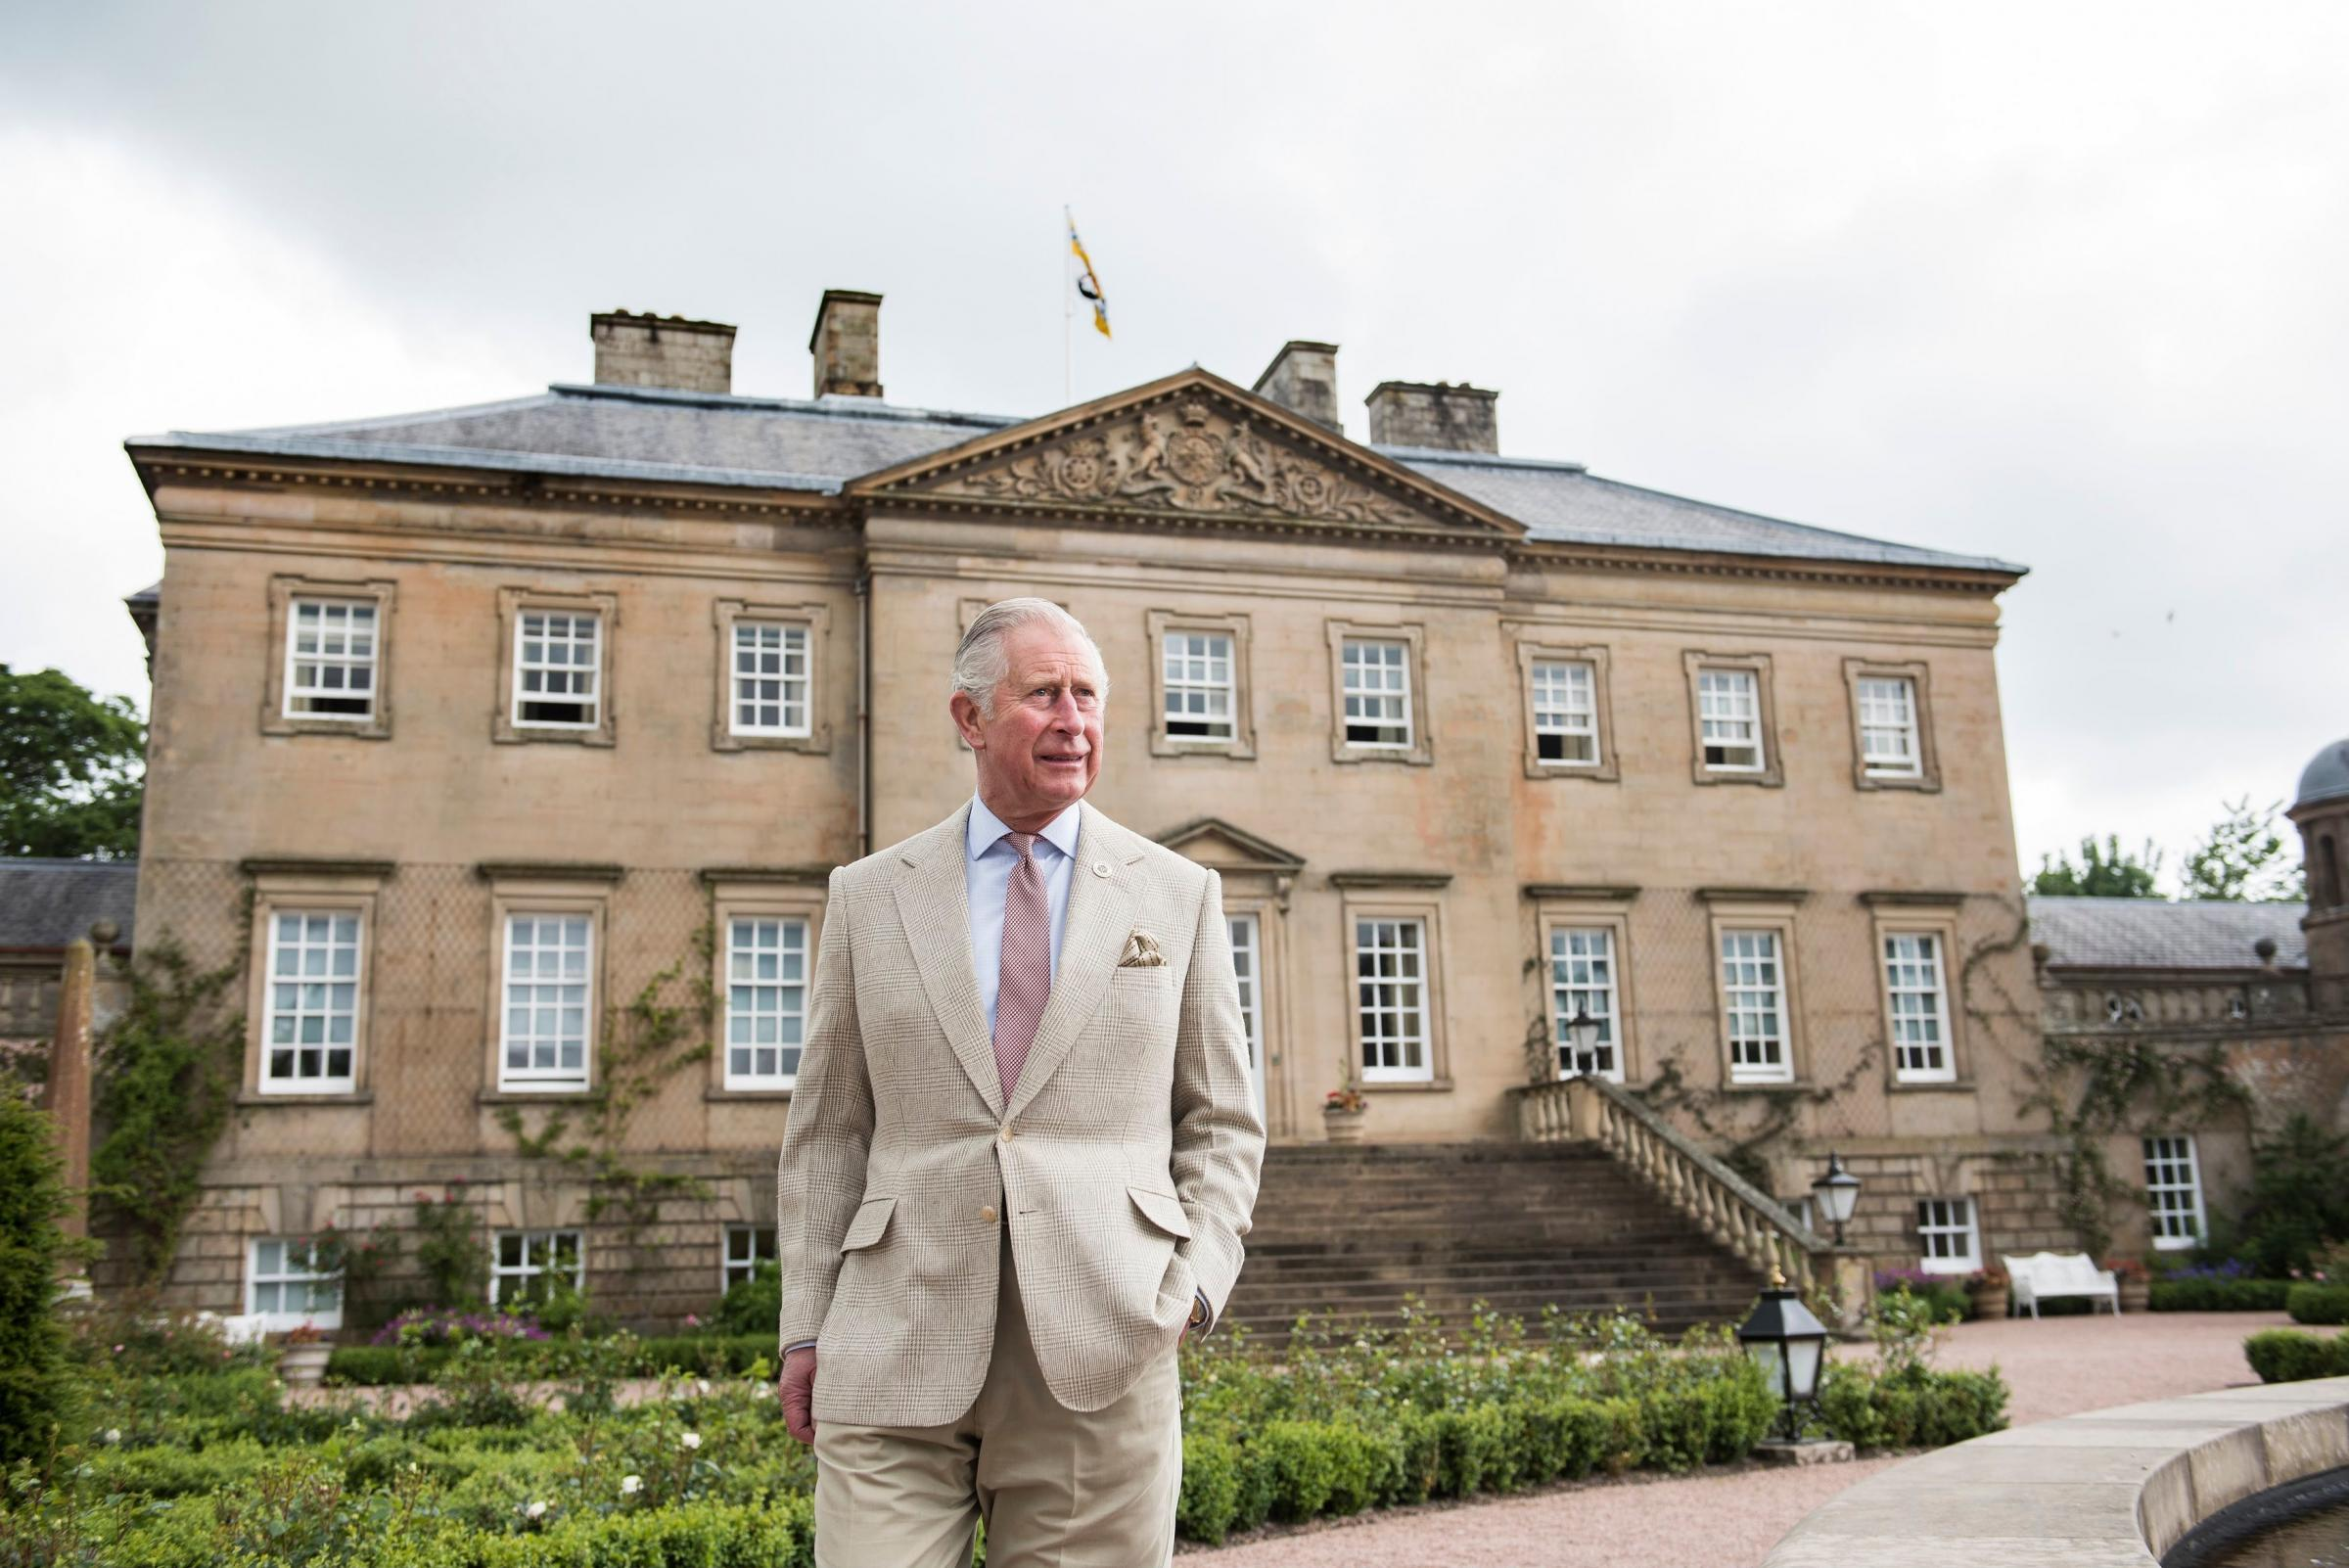 Duke of Rothesay at Dumfries House, Scotland